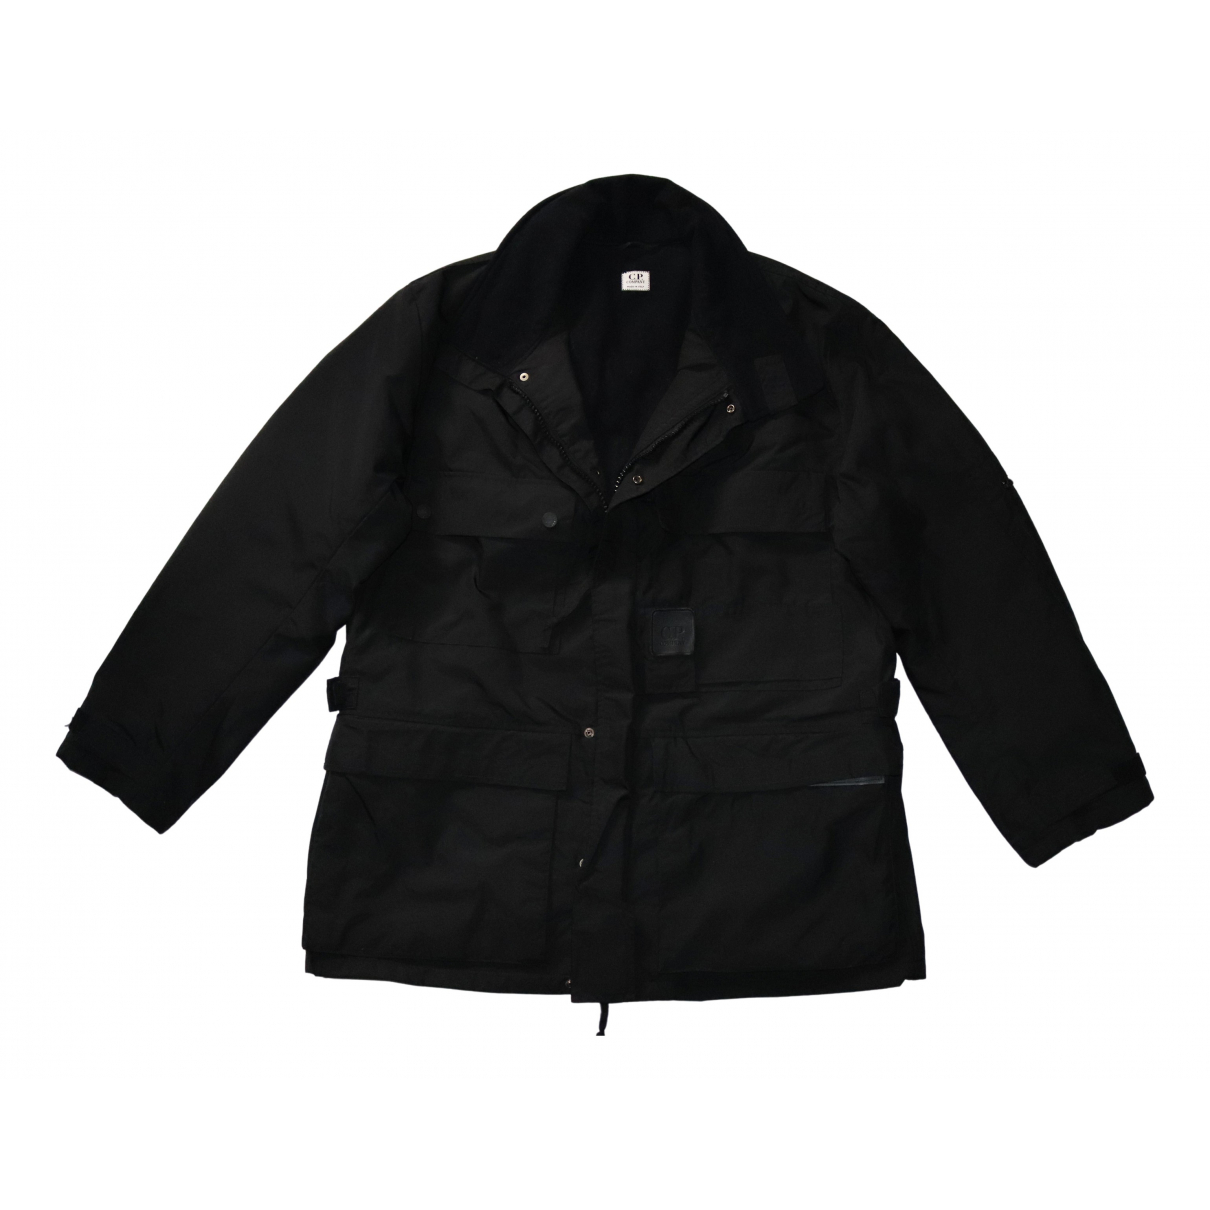 Cp Company \N Jacke in  Schwarz Polyester